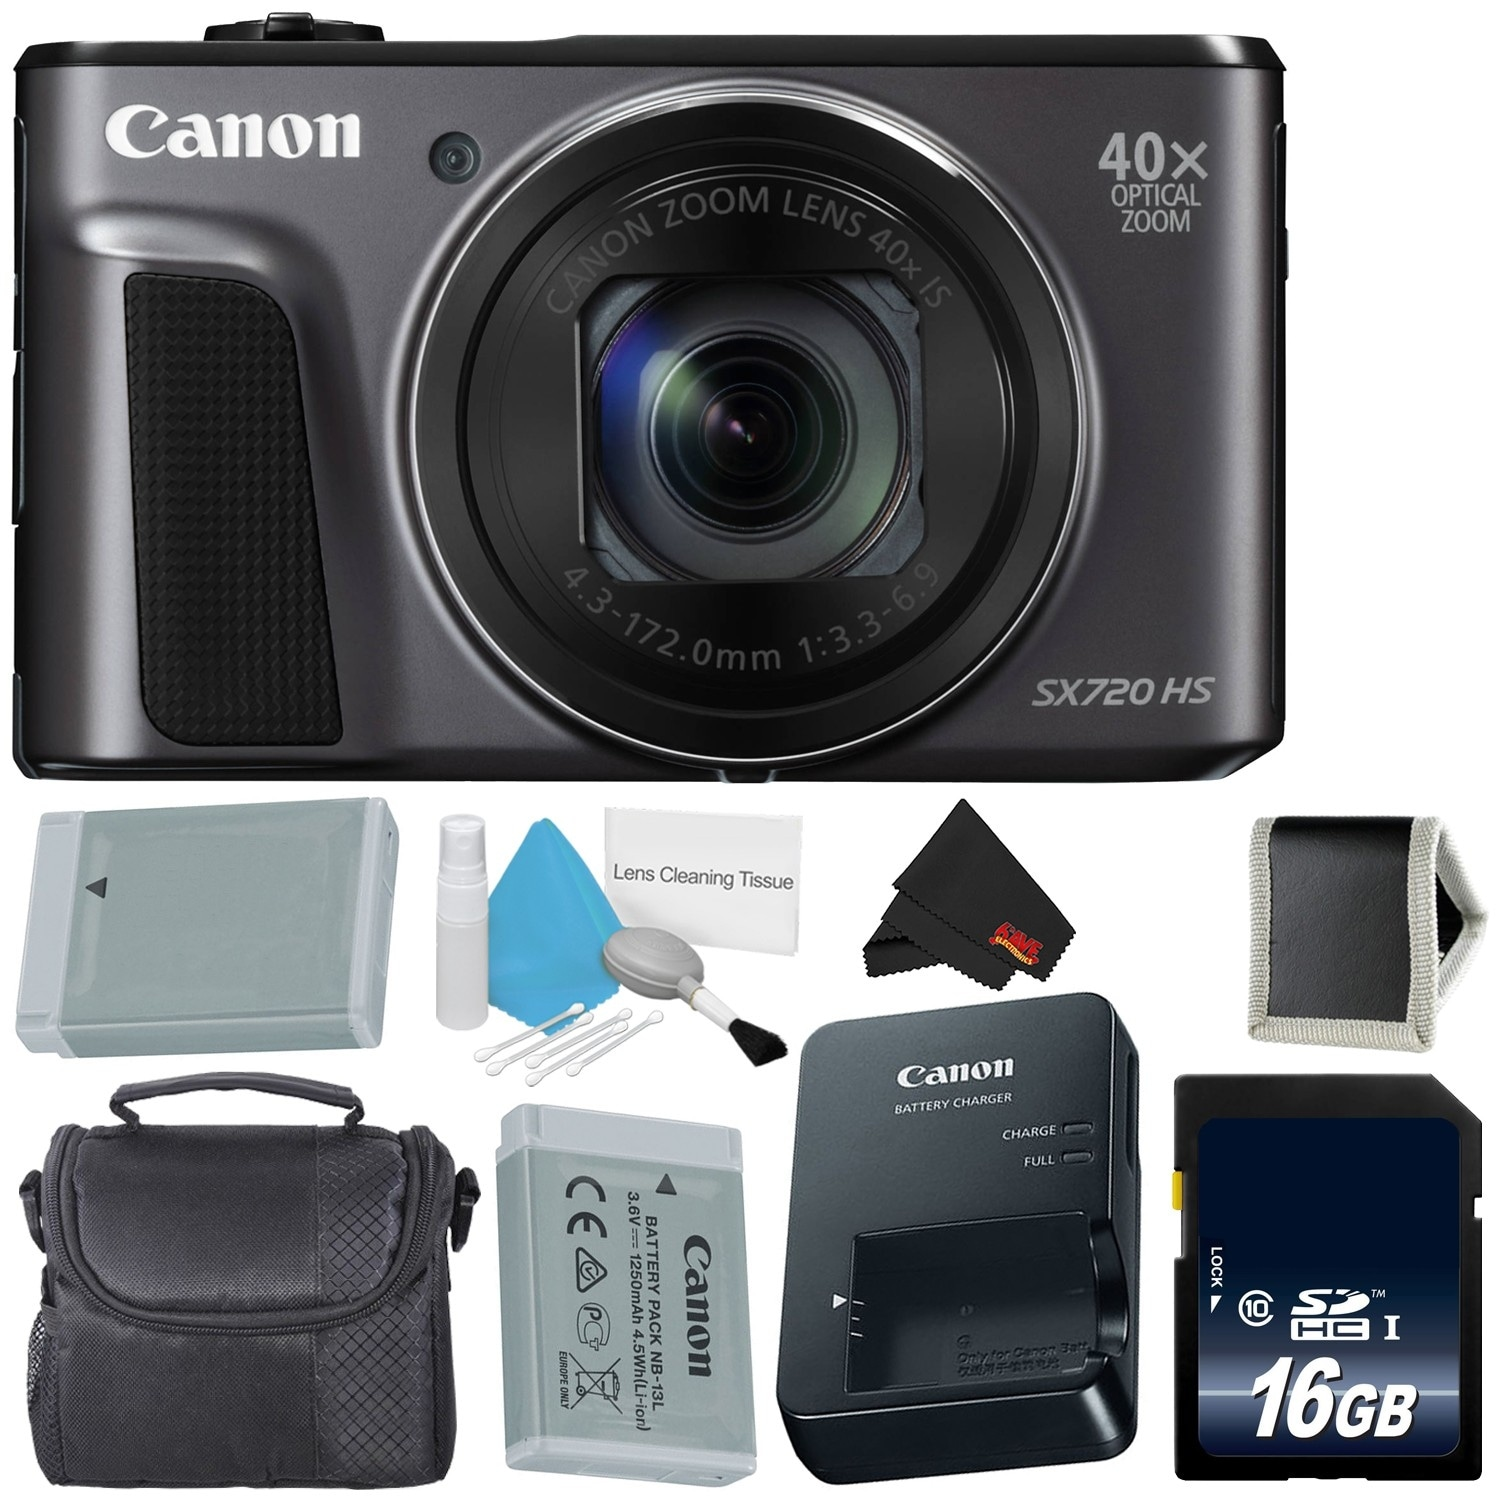 8ef485d1a Shop Canon PowerShot SX720 HS Digital Camera Bundle - Free Shipping Today -  Overstock - 21469402